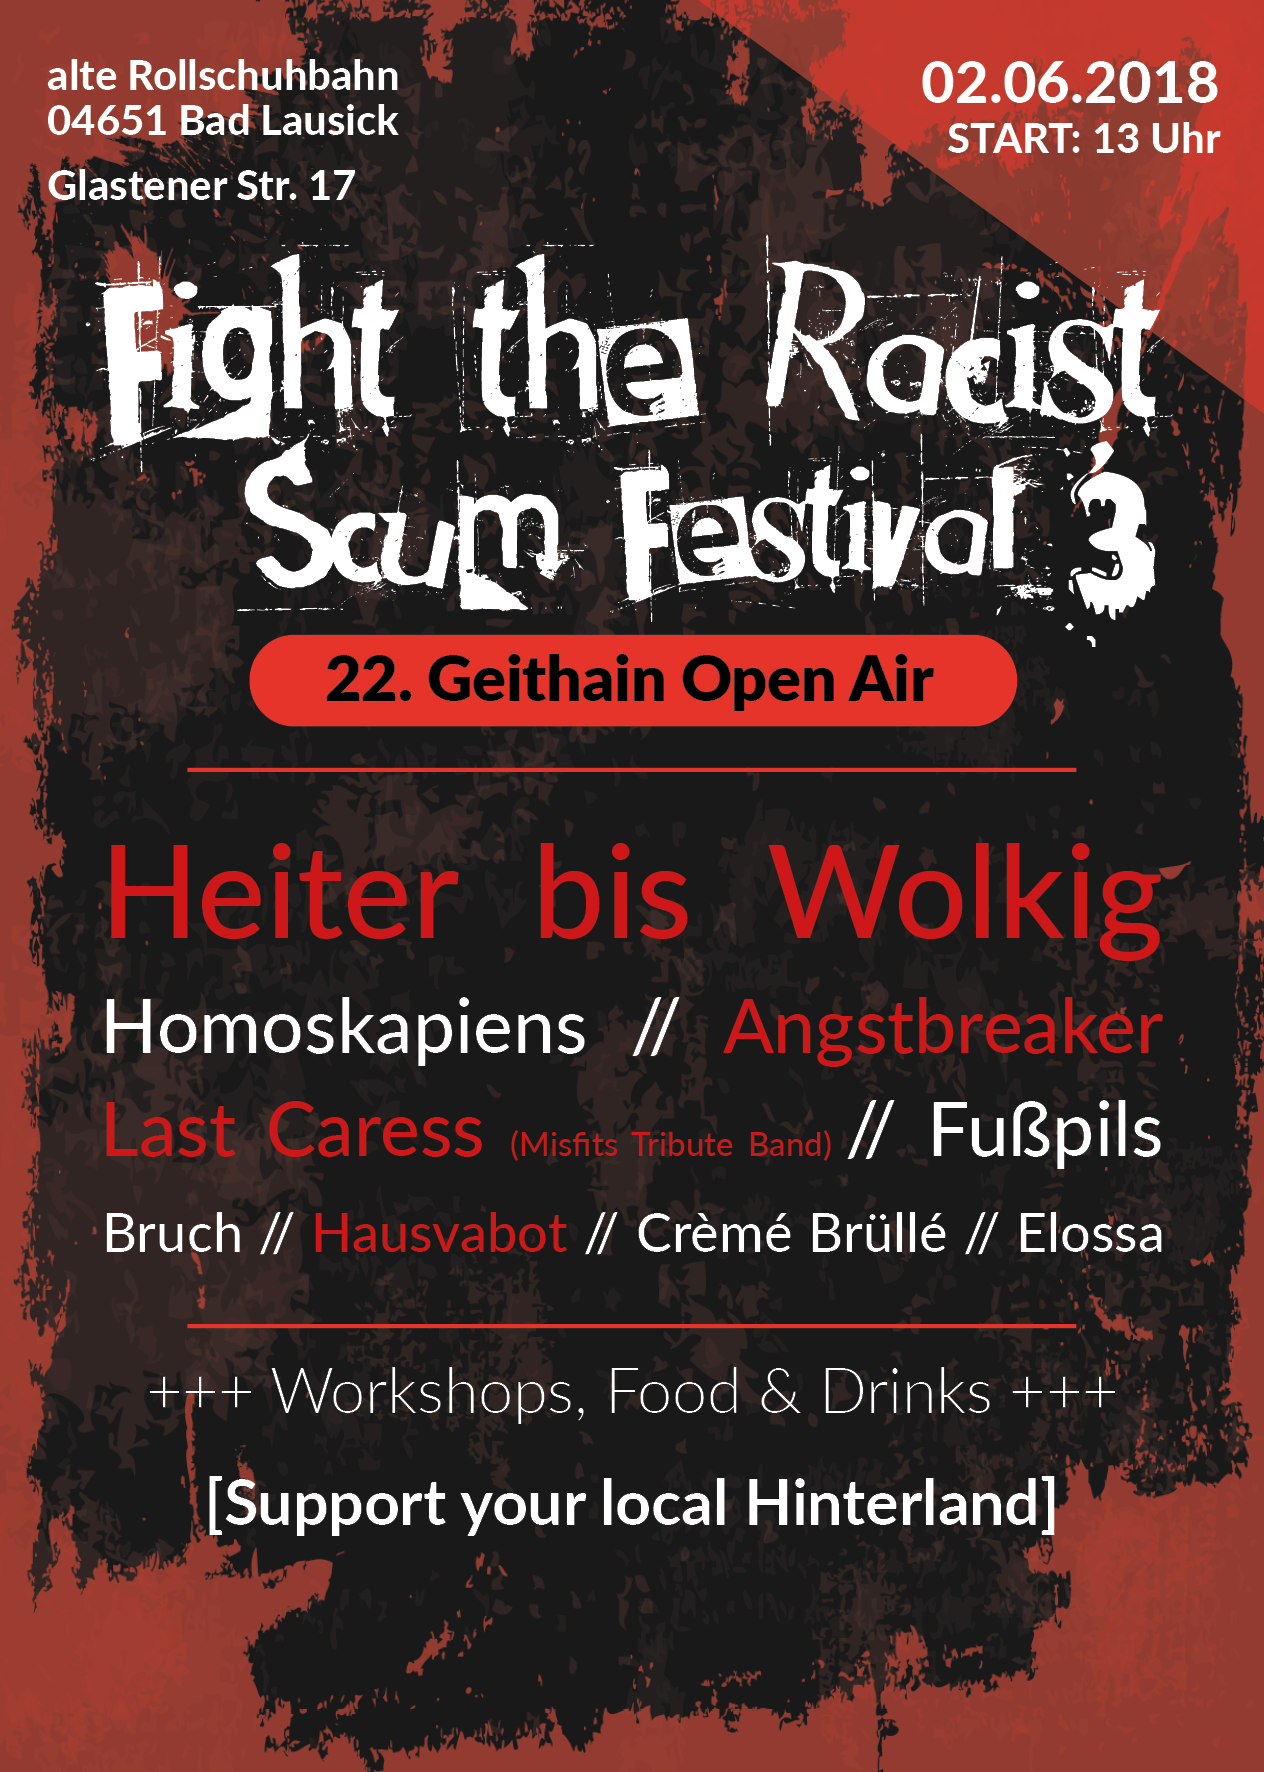 Fight the Racist Scum Festival 3